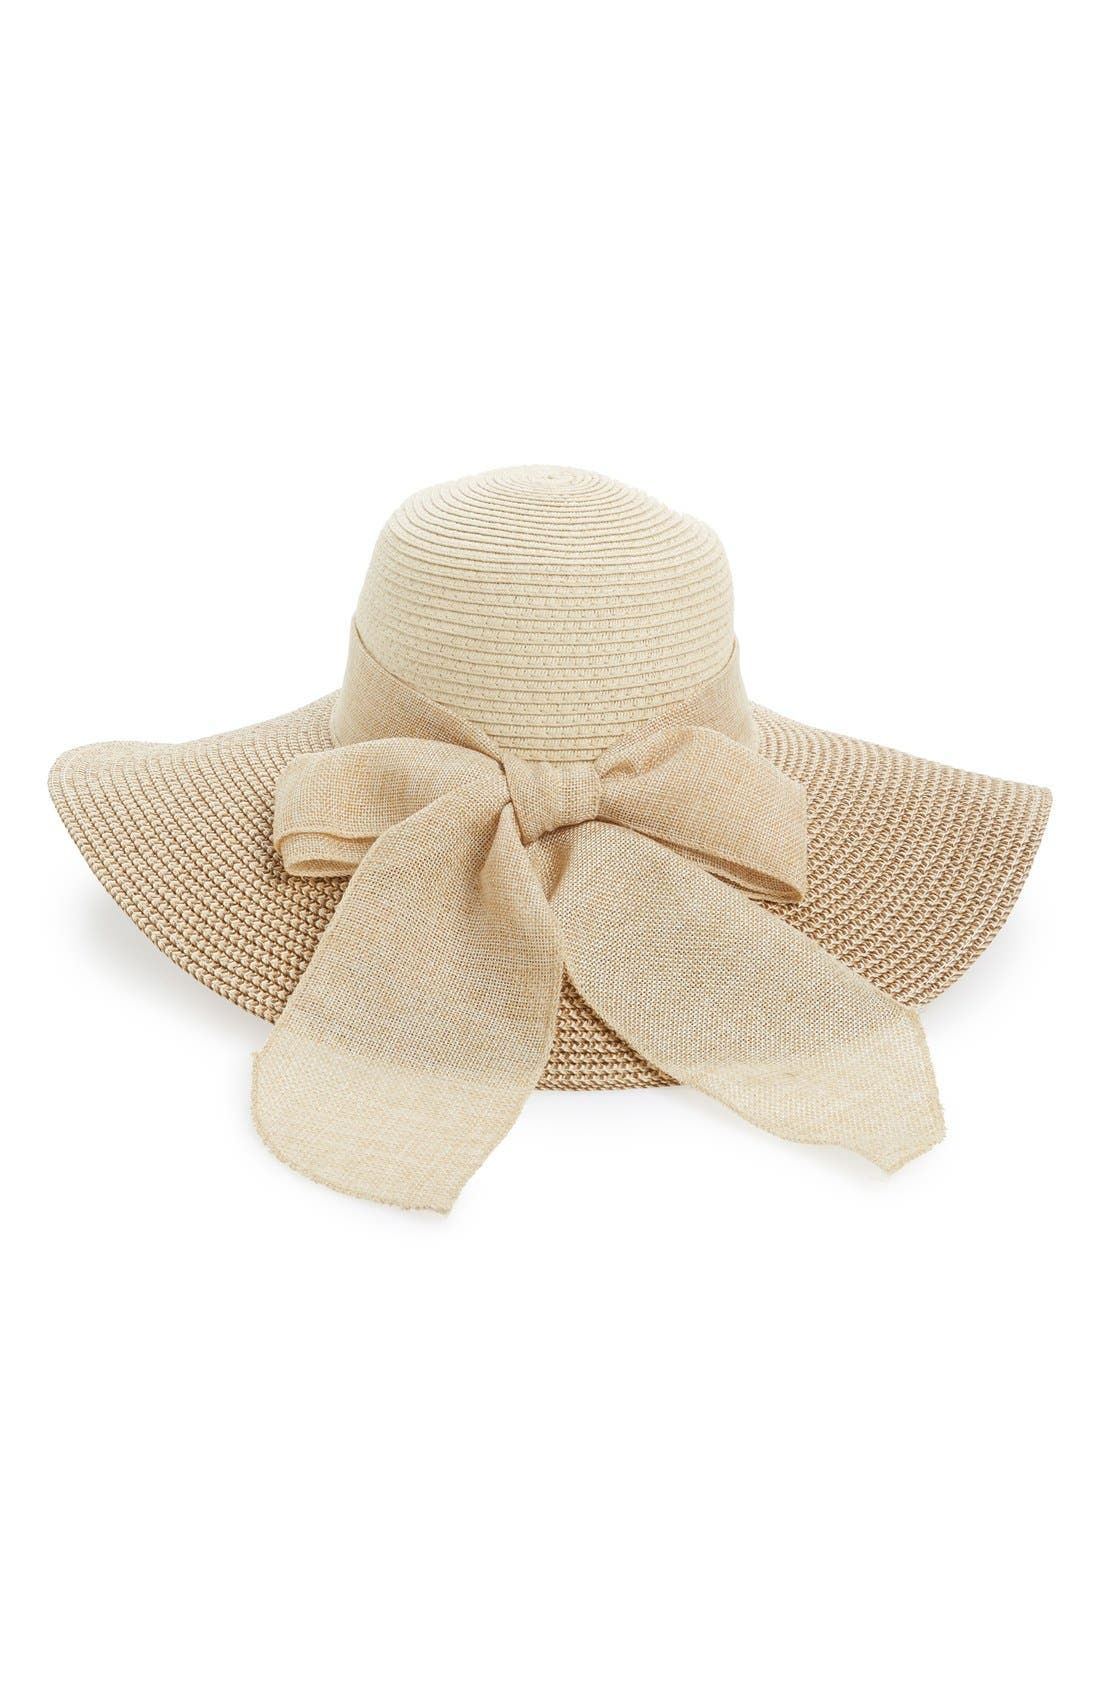 Floppy Straw Hat,                             Main thumbnail 1, color,                             260